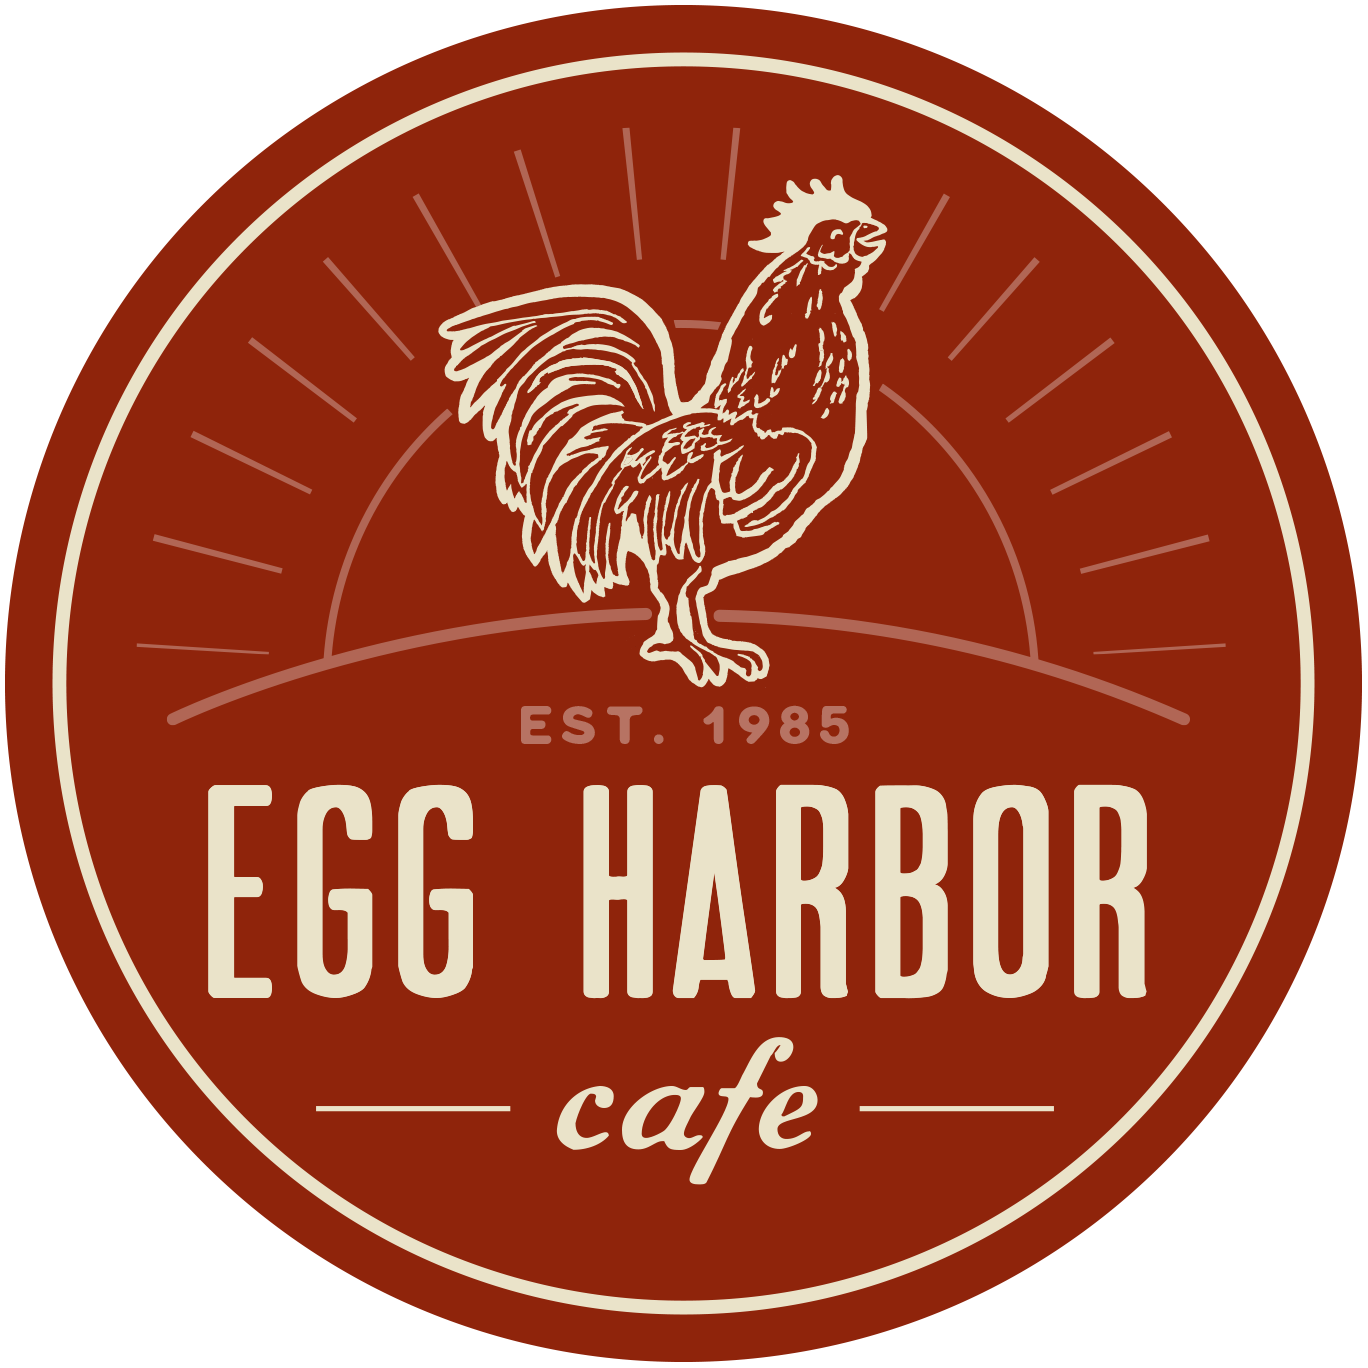 Egg Harbor Cafe pizza